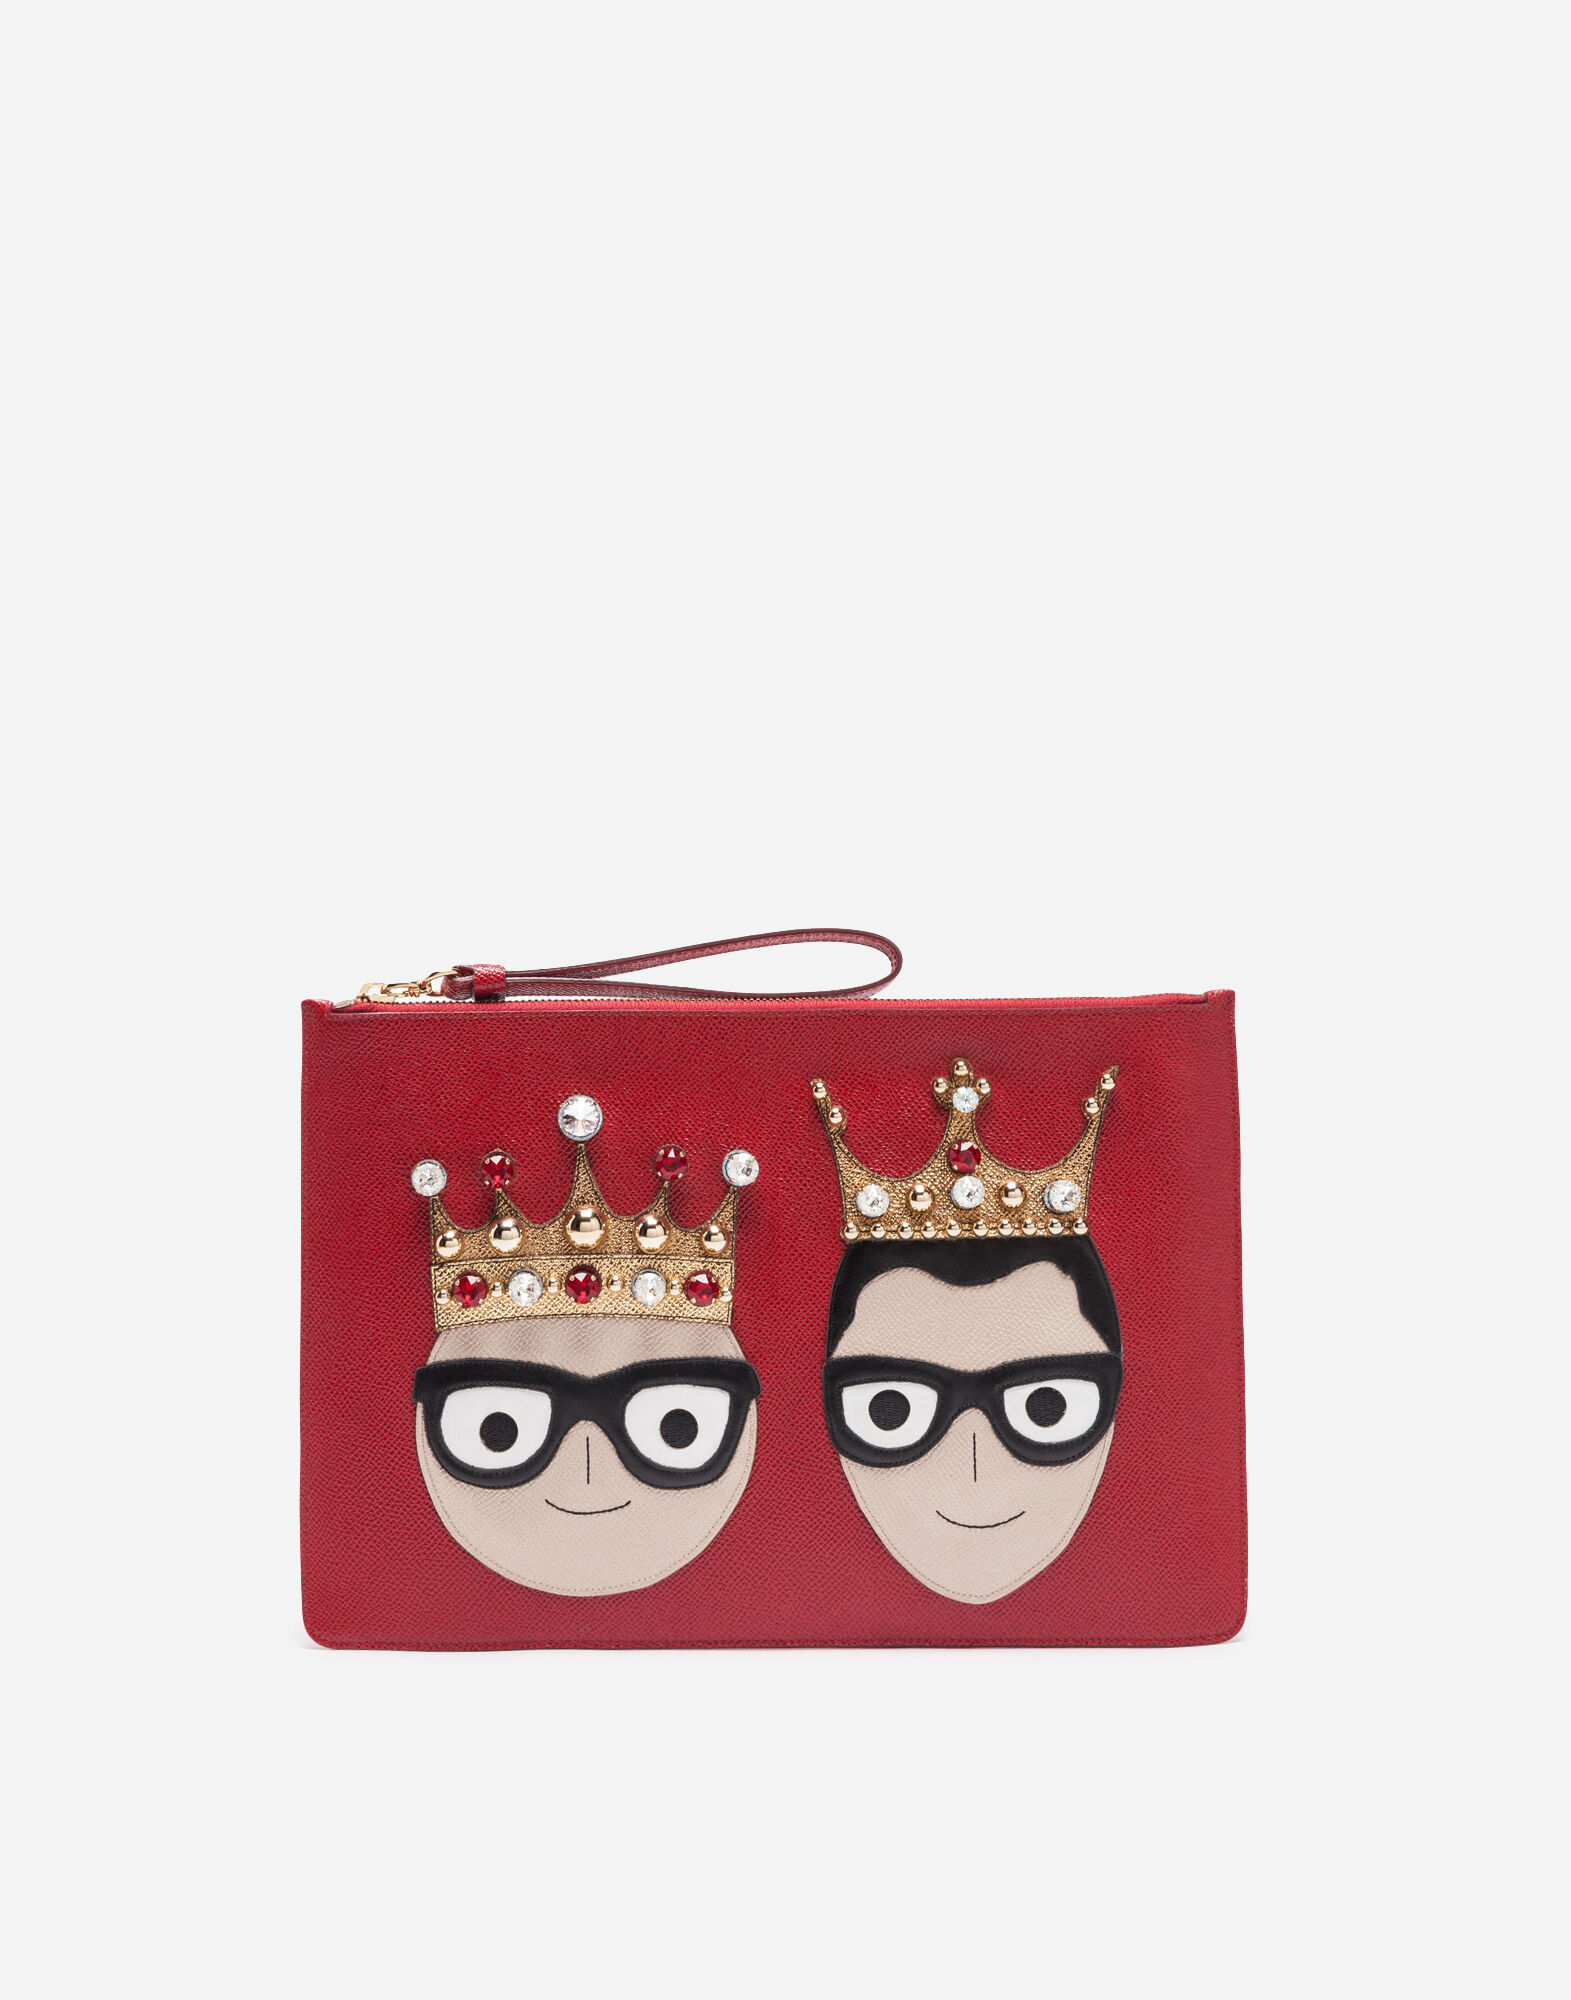 Leather Pouch With Patches Of The Designers in Red